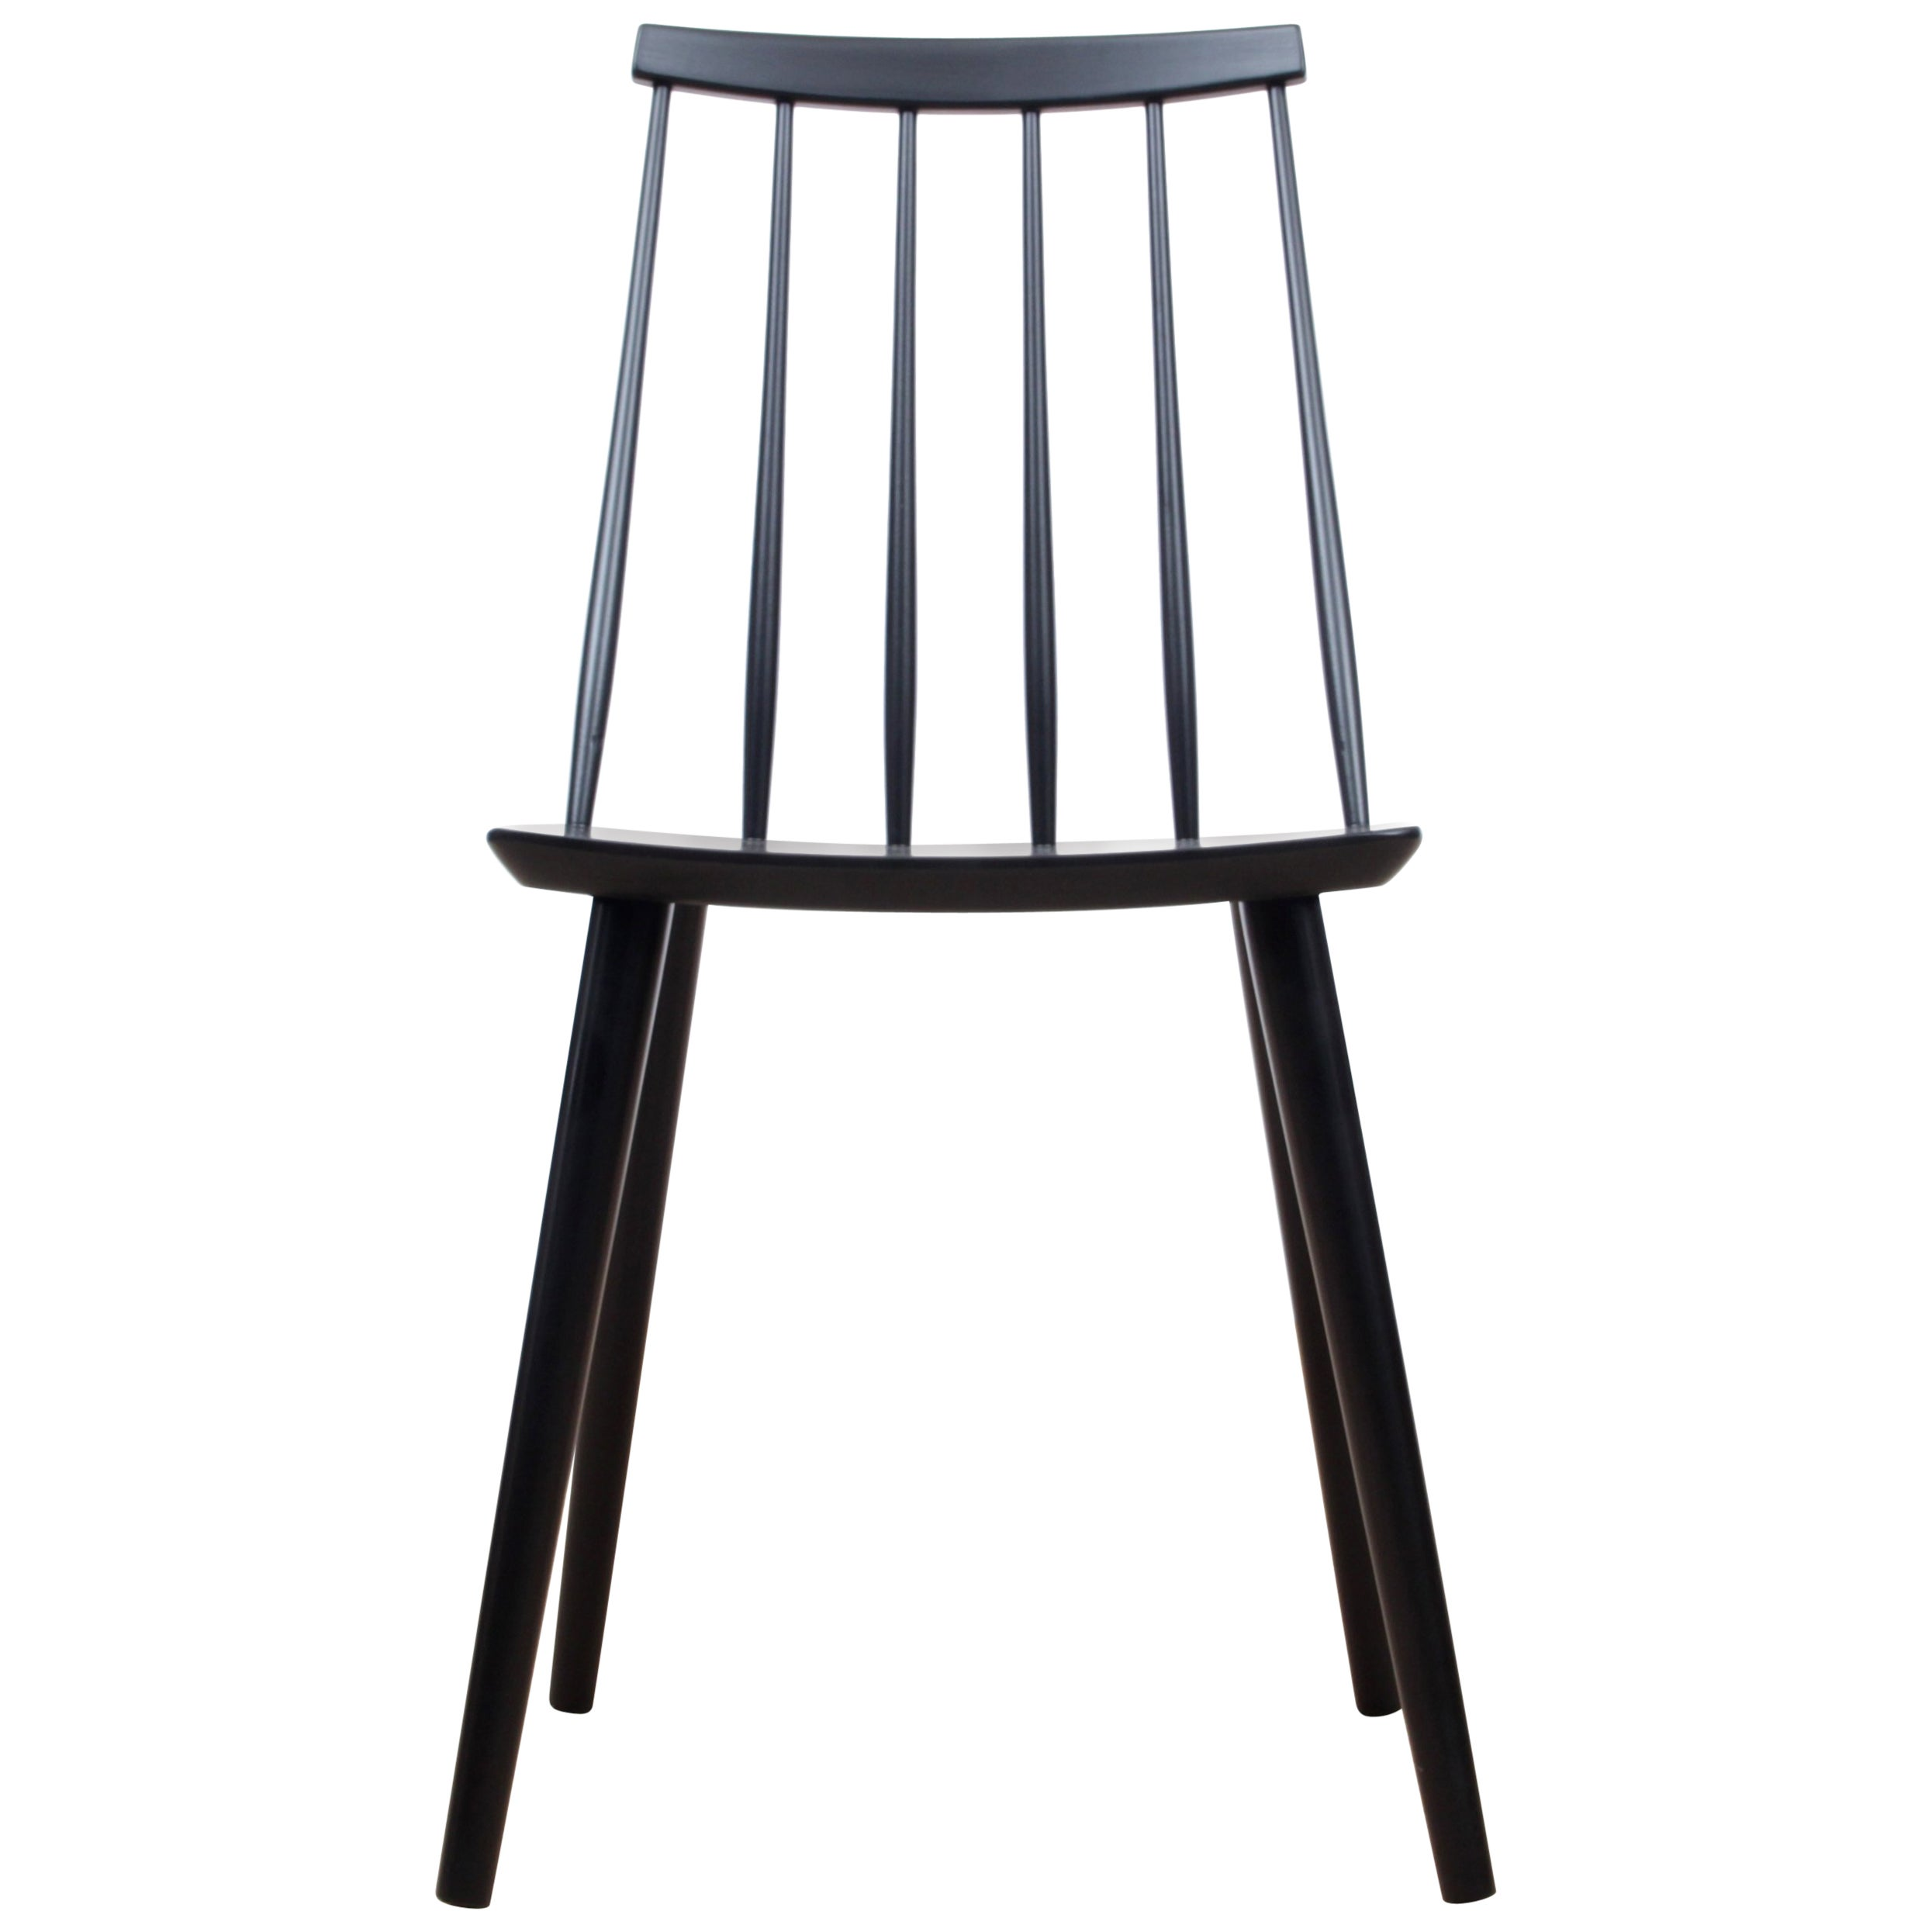 Mid-Century Modern Scandinavian Stick Back Chair by Thomas Harlev